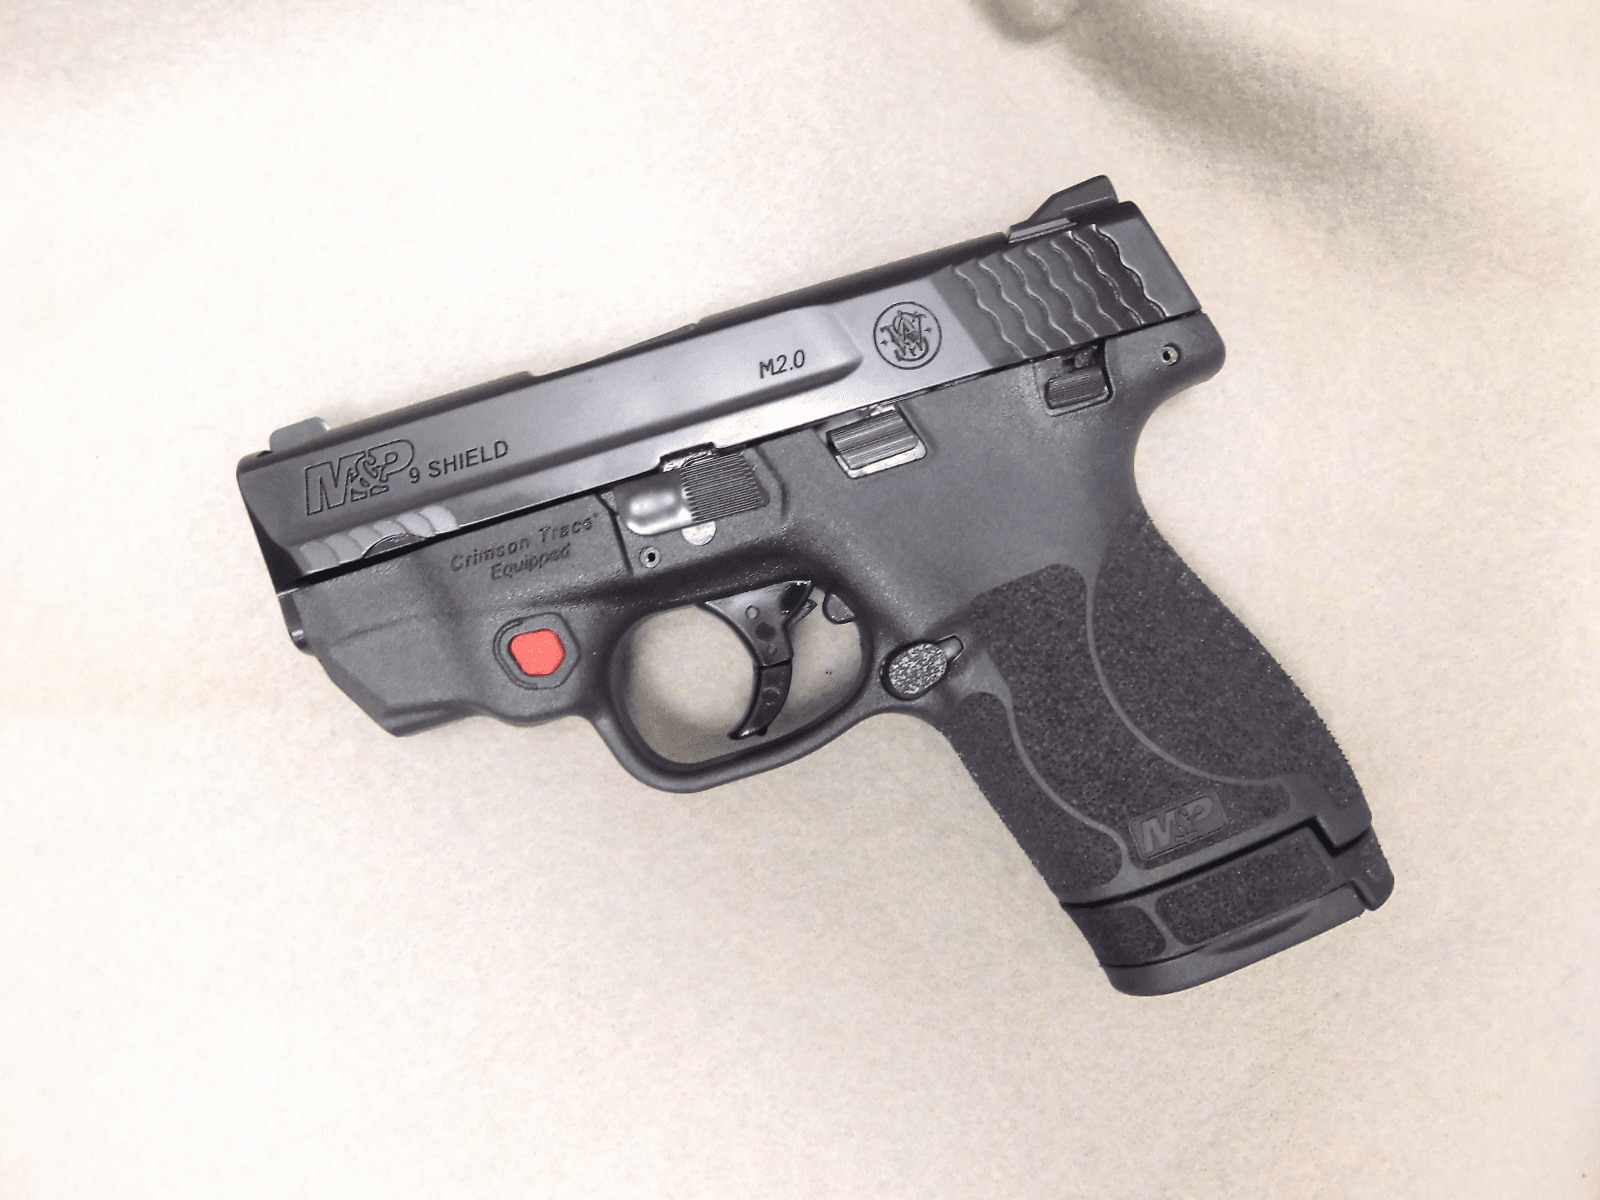 Smith & Wesson M&P 9 Shield M2.0 (9mm)